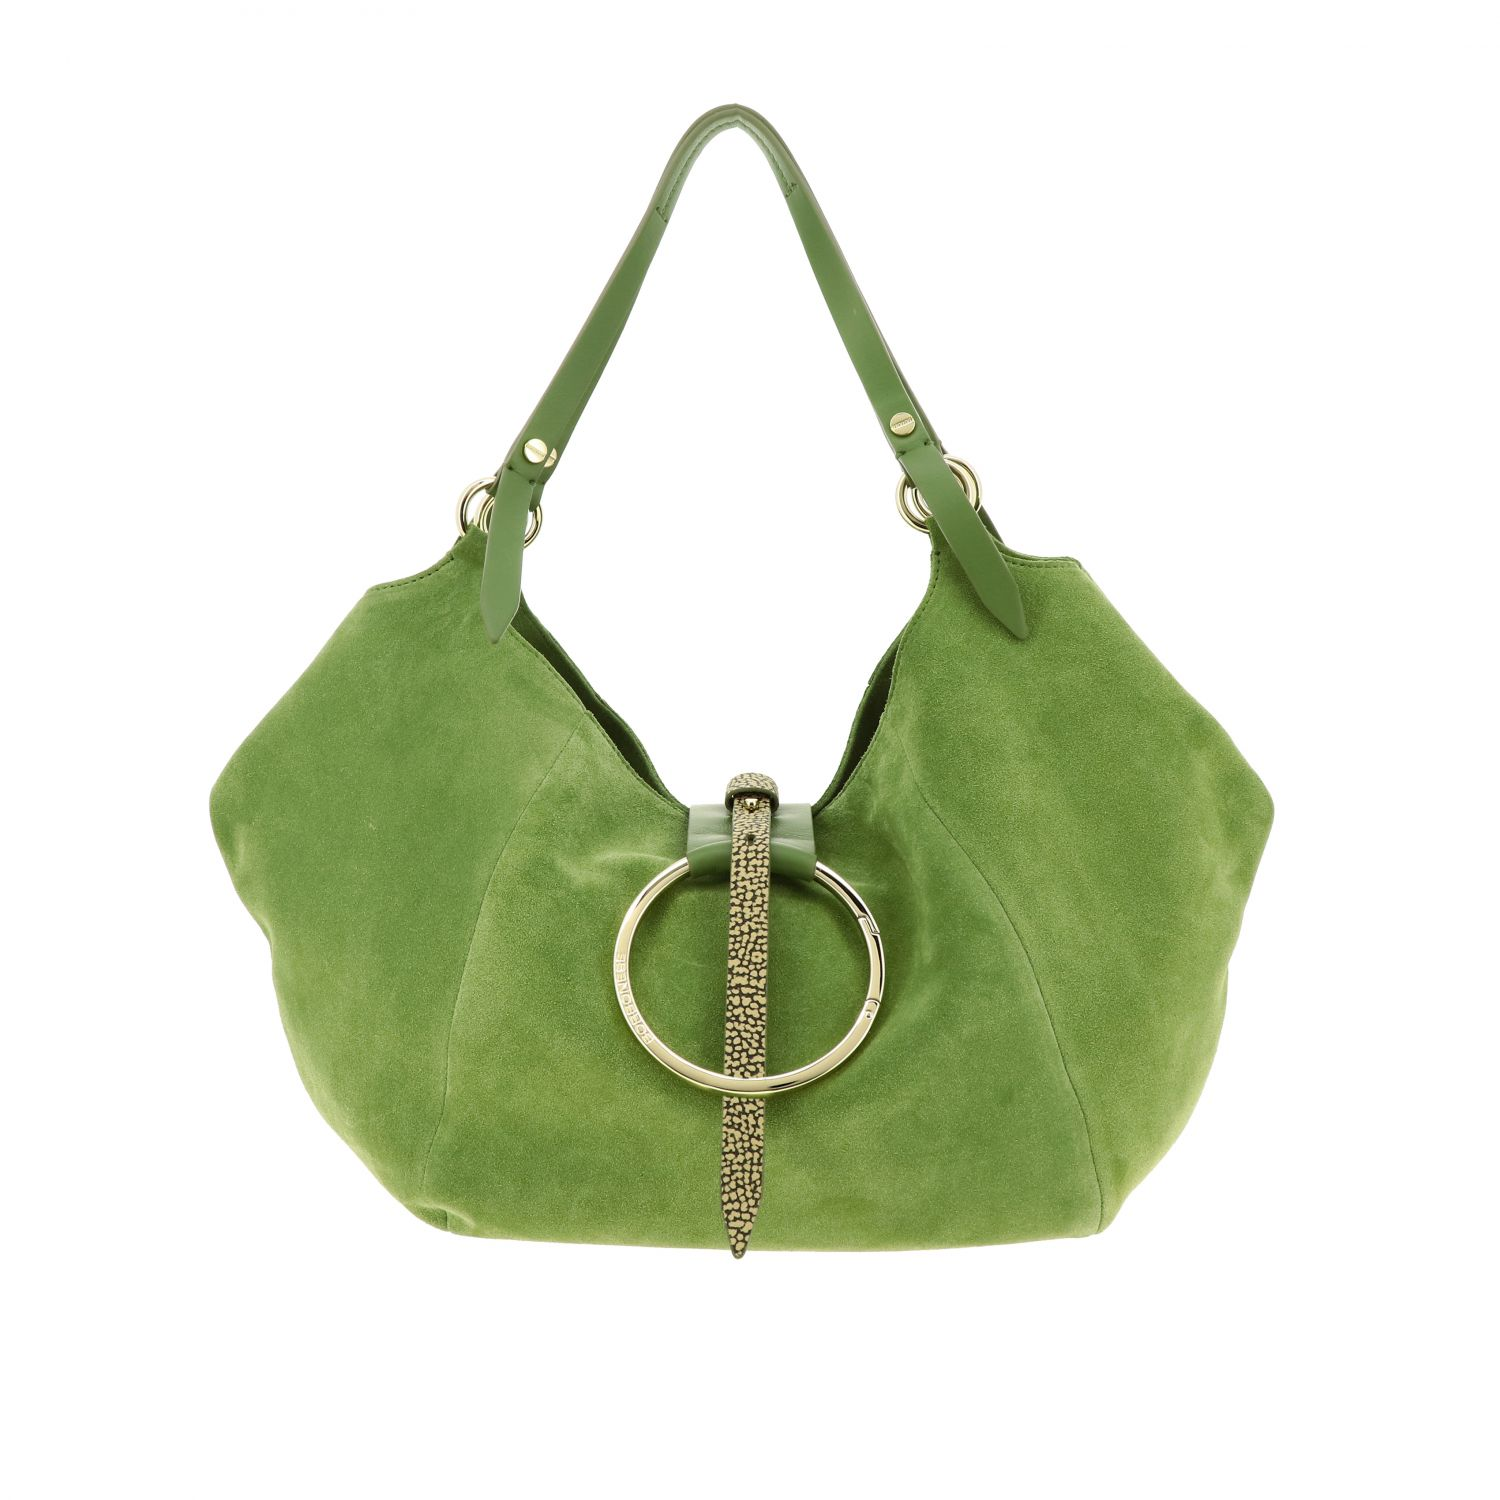 Borbonese shoulder bag in suede and leather green 1